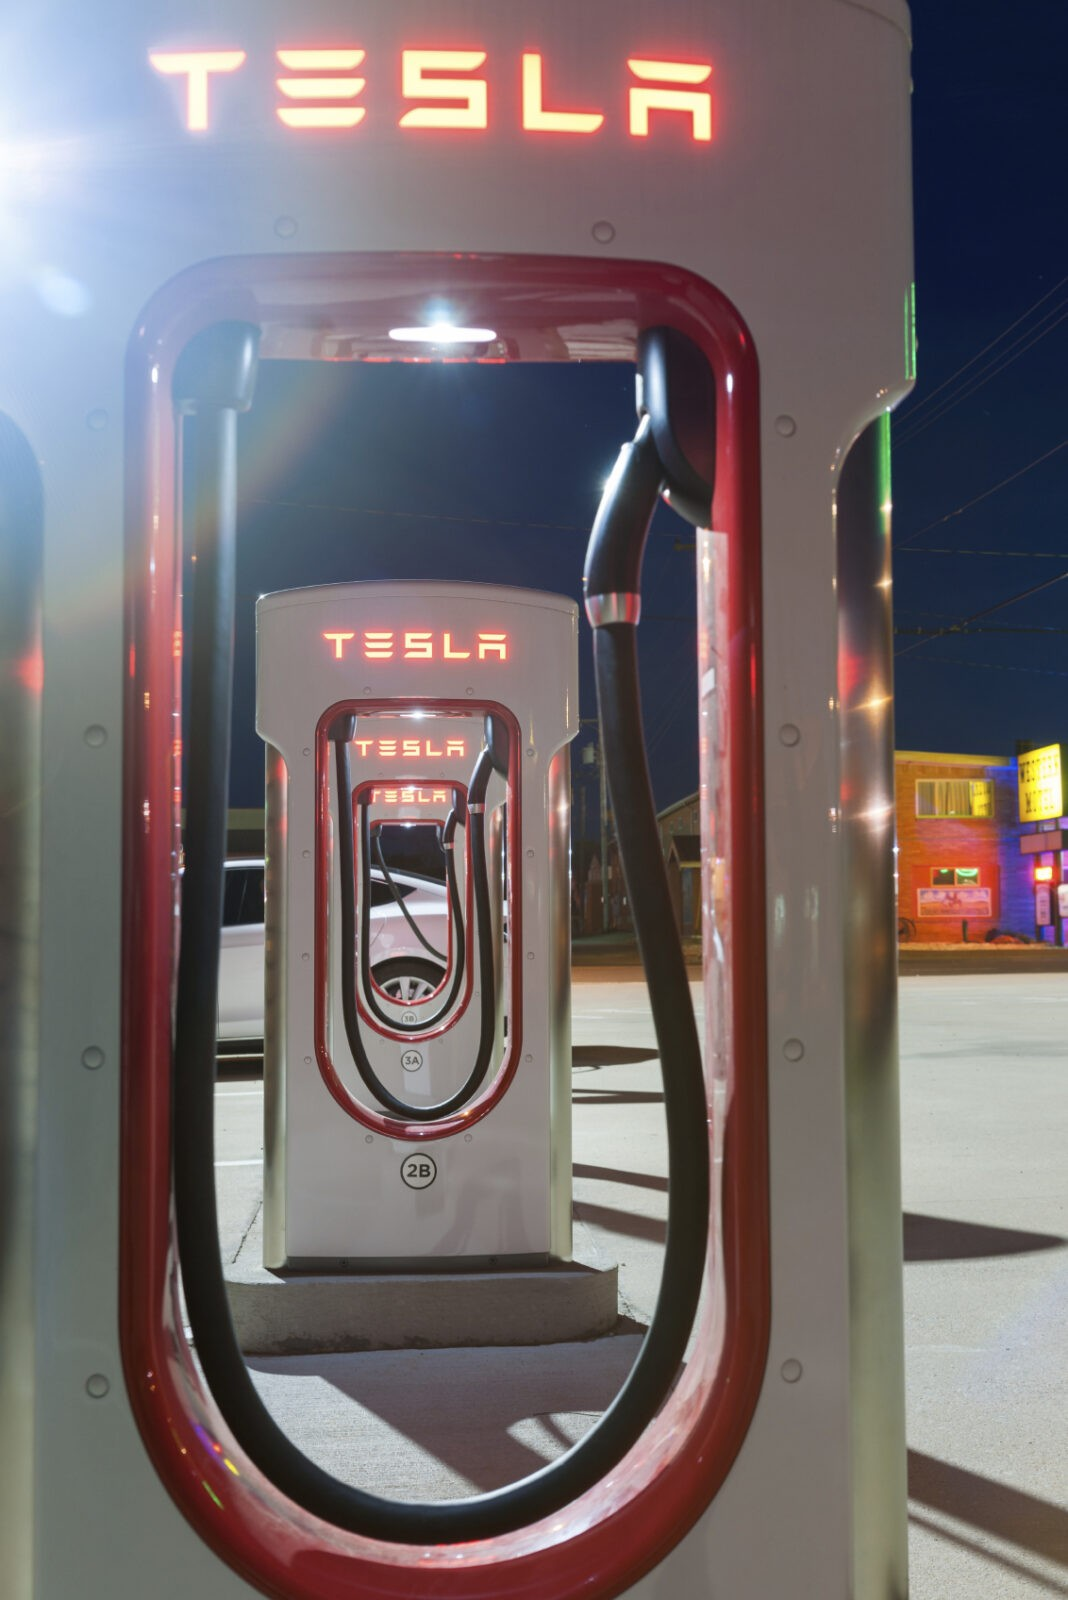 Night image of Tesla battery recharge station